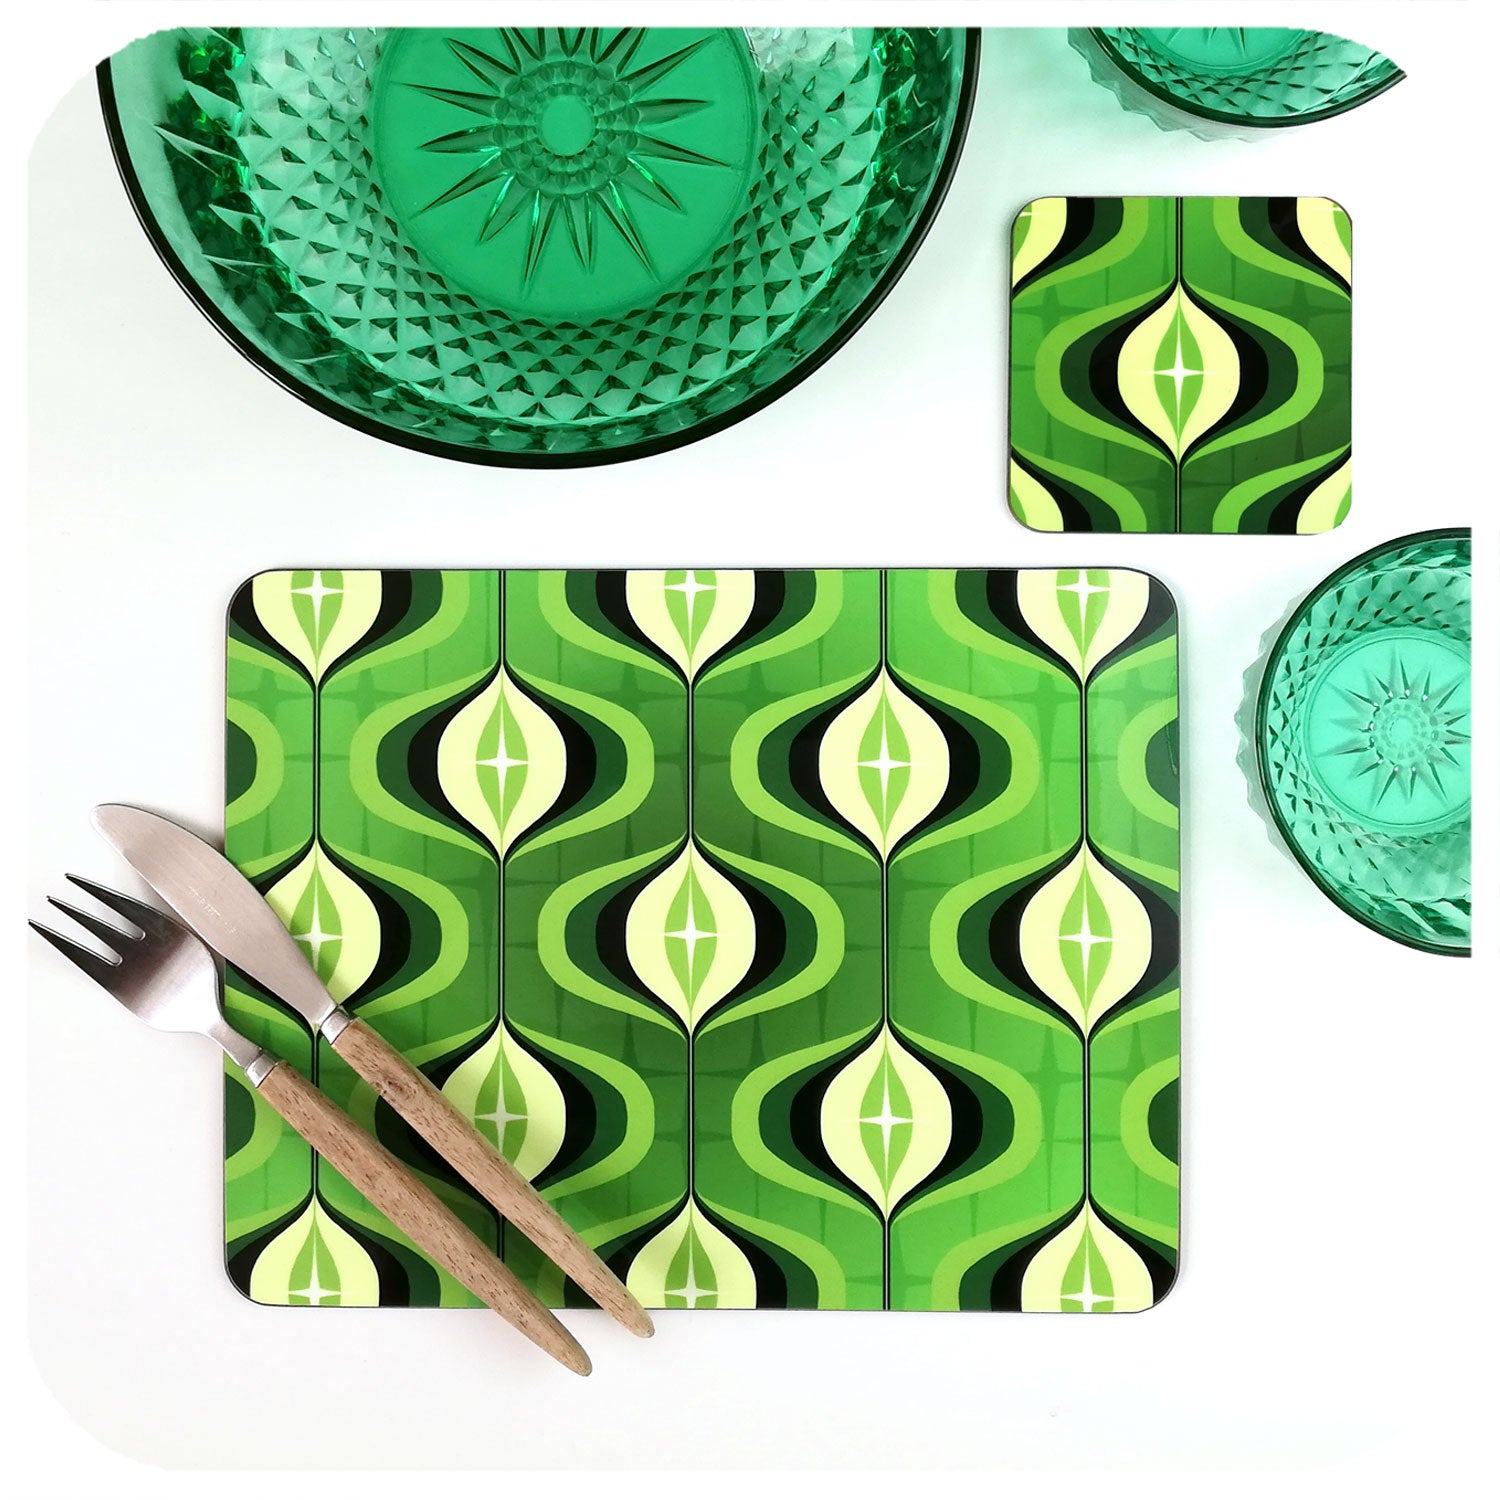 1970s Green Op Art Placemat and matching coasters | The Inkabilly Emporium